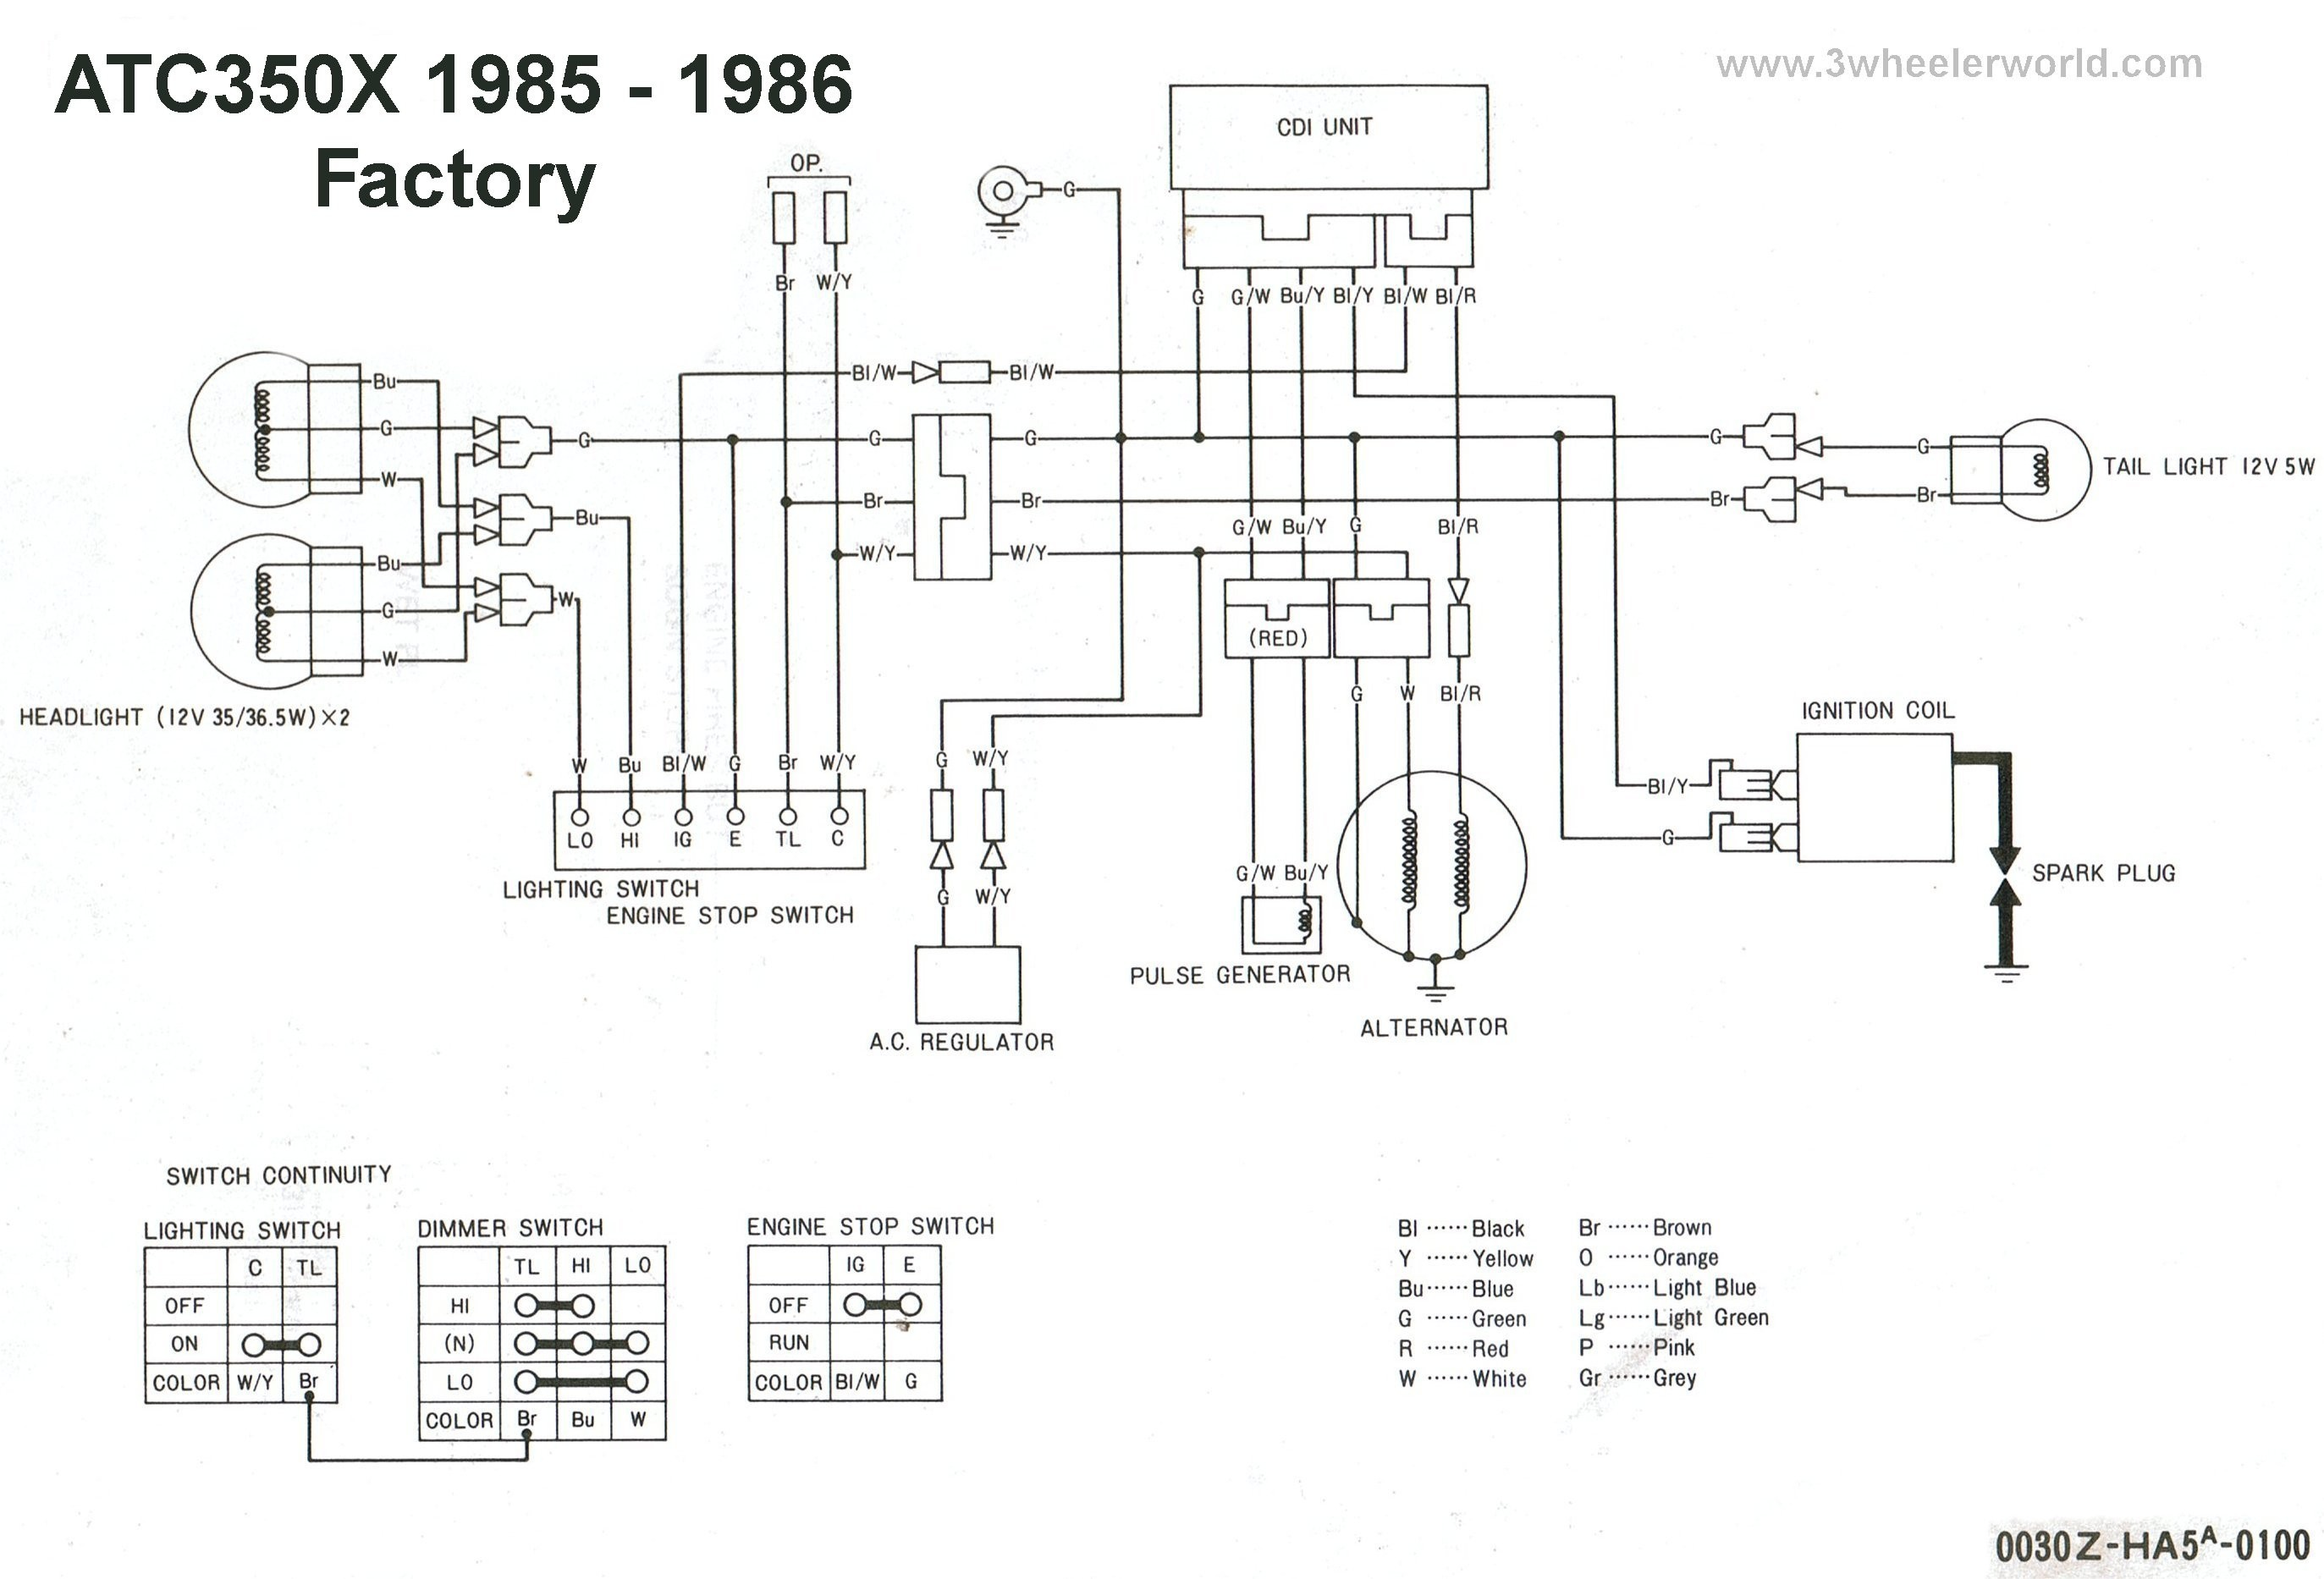 Wiring Trx 2001 Diagram Honda 350 Atv Wiring Diagram Schema Male Track Male Track Atmosphereconcept It